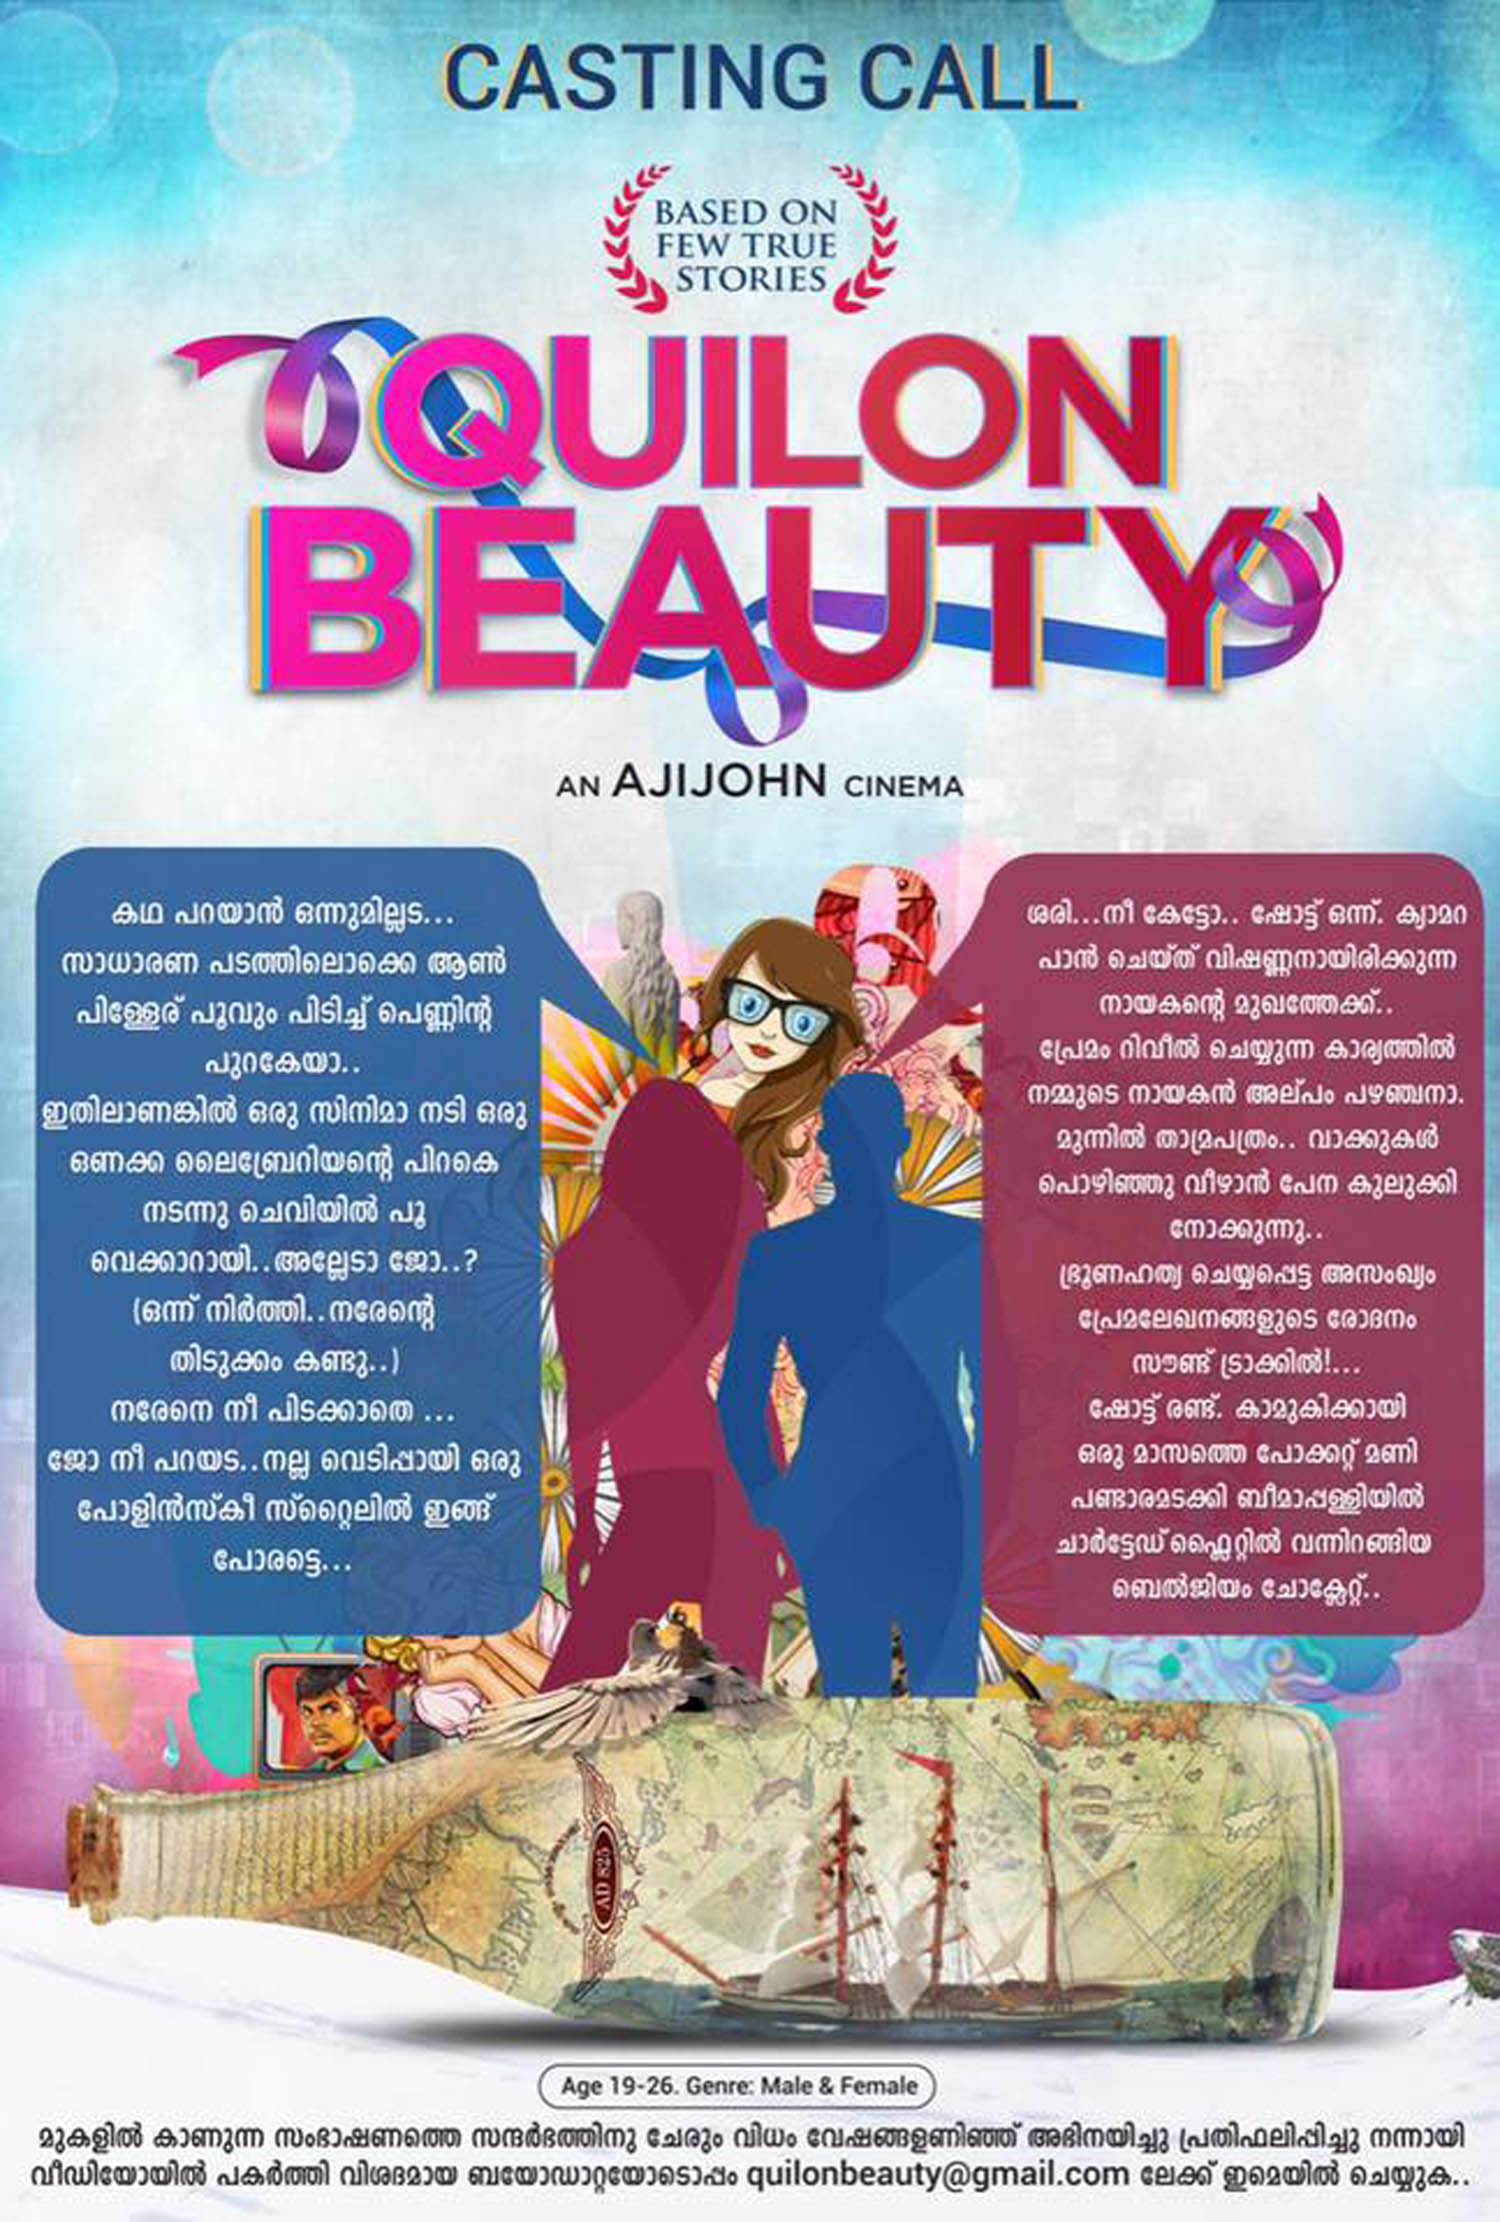 Quilon Beauty, aji john movie, hotel California malayalam movie, Quilon Beauty malayalam movie, latest malayalam movie, casting call